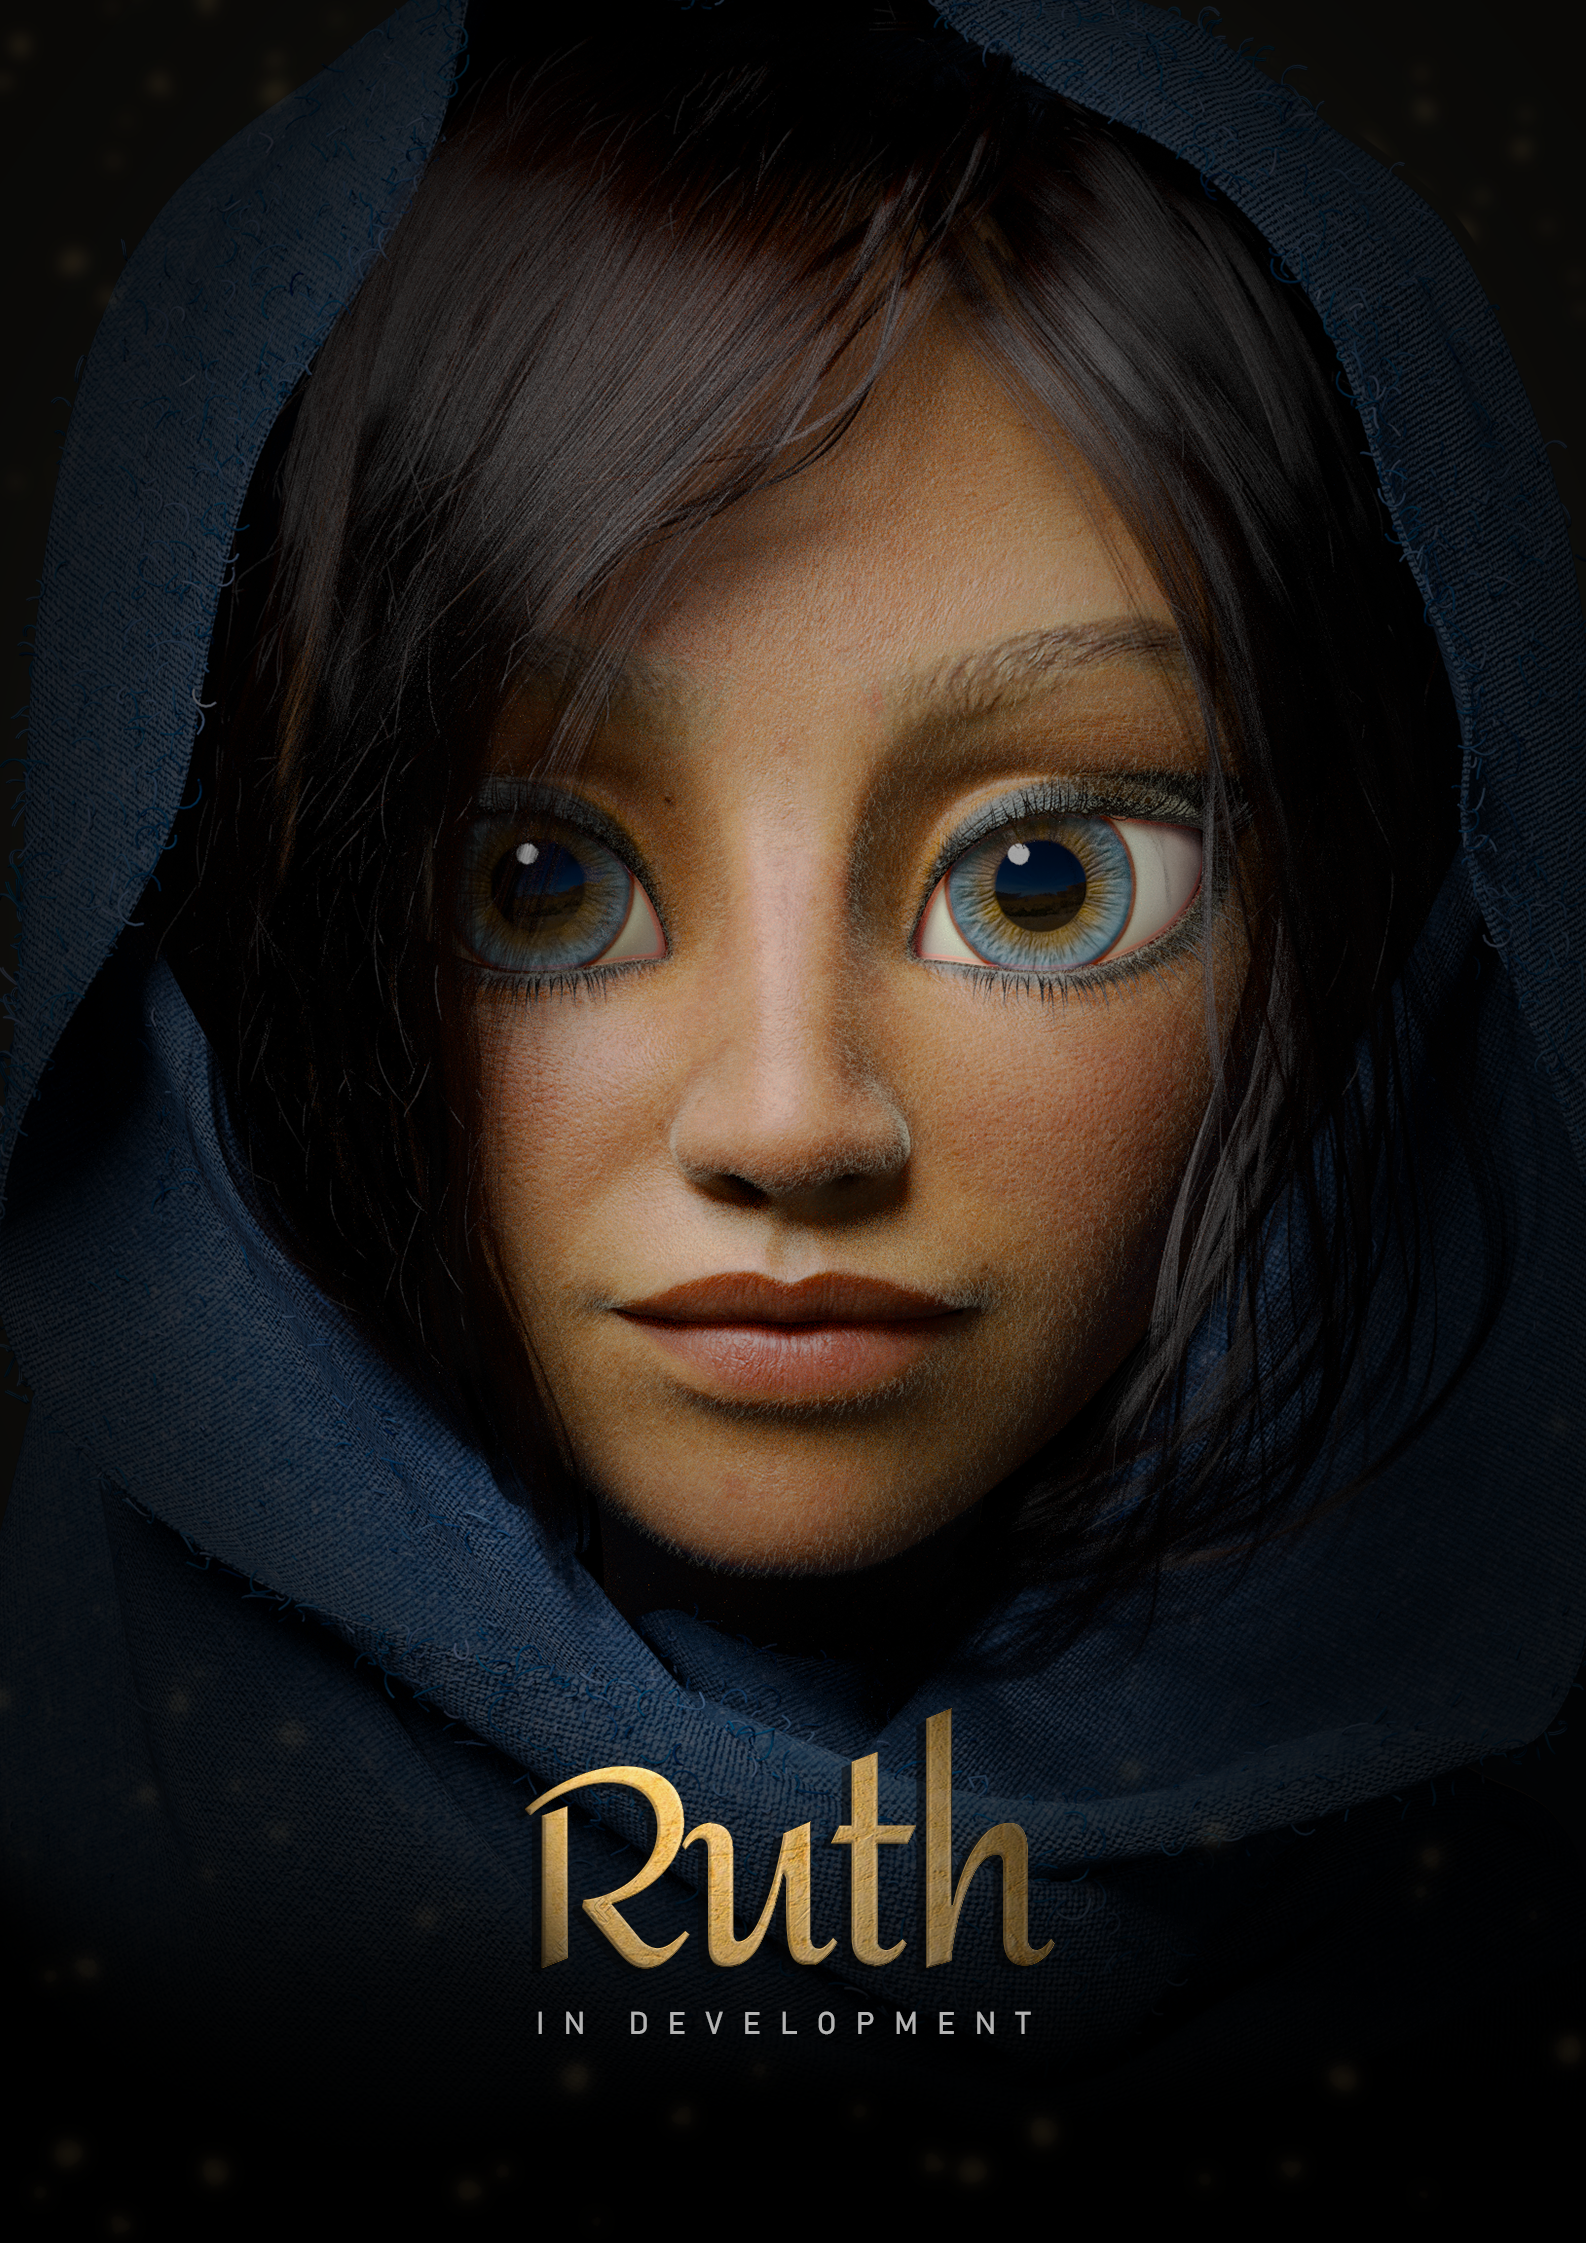 Ruth-Poster.png